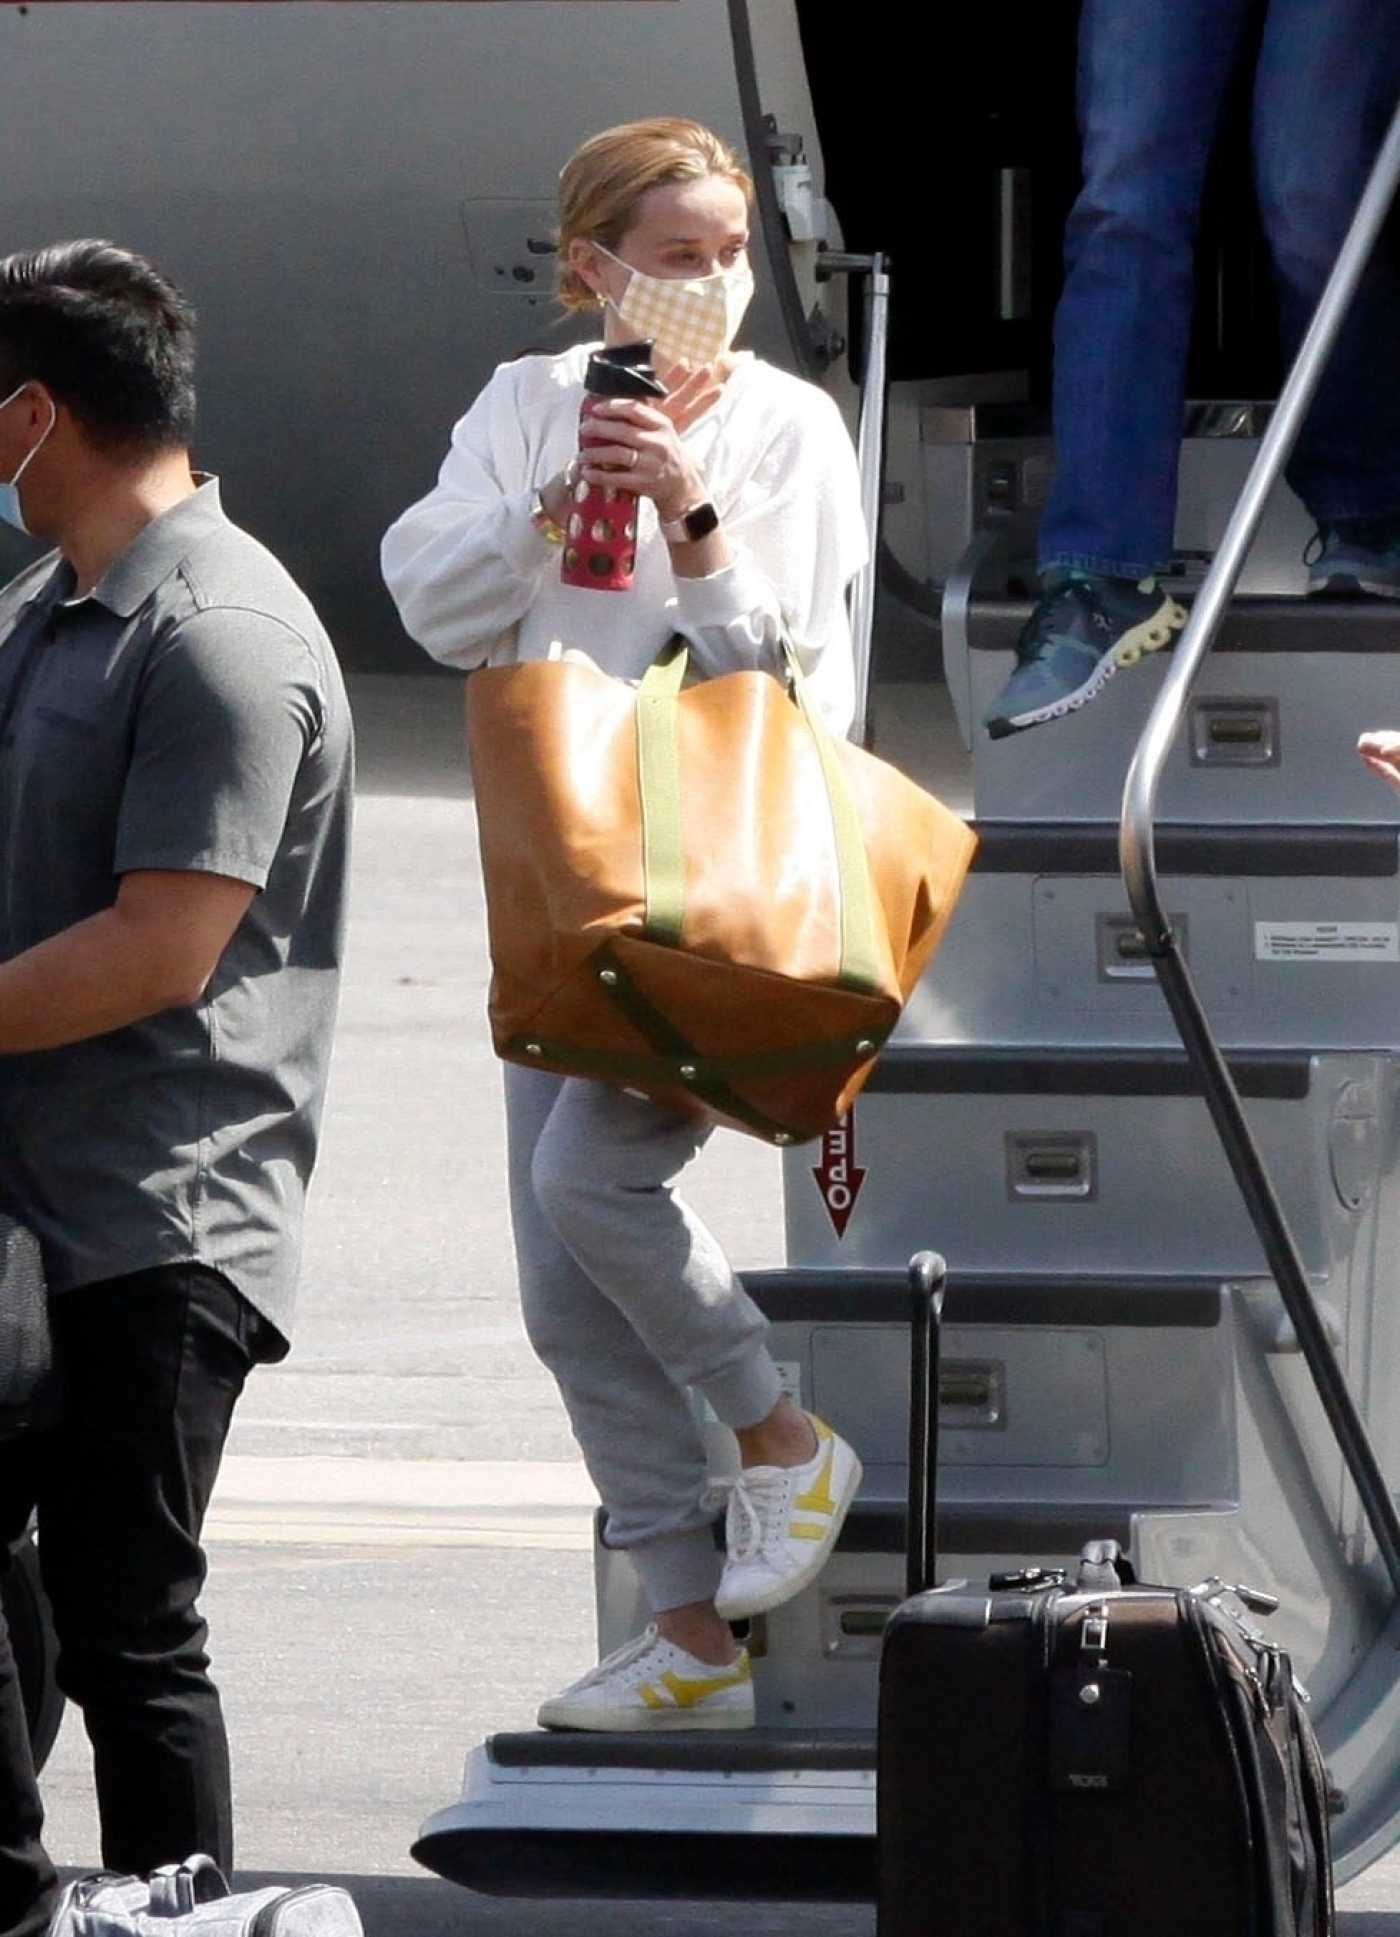 Reese Witherspoon in a White Sweatshirt Arrives on a Private Jet in Los Angeles 04/06/2021